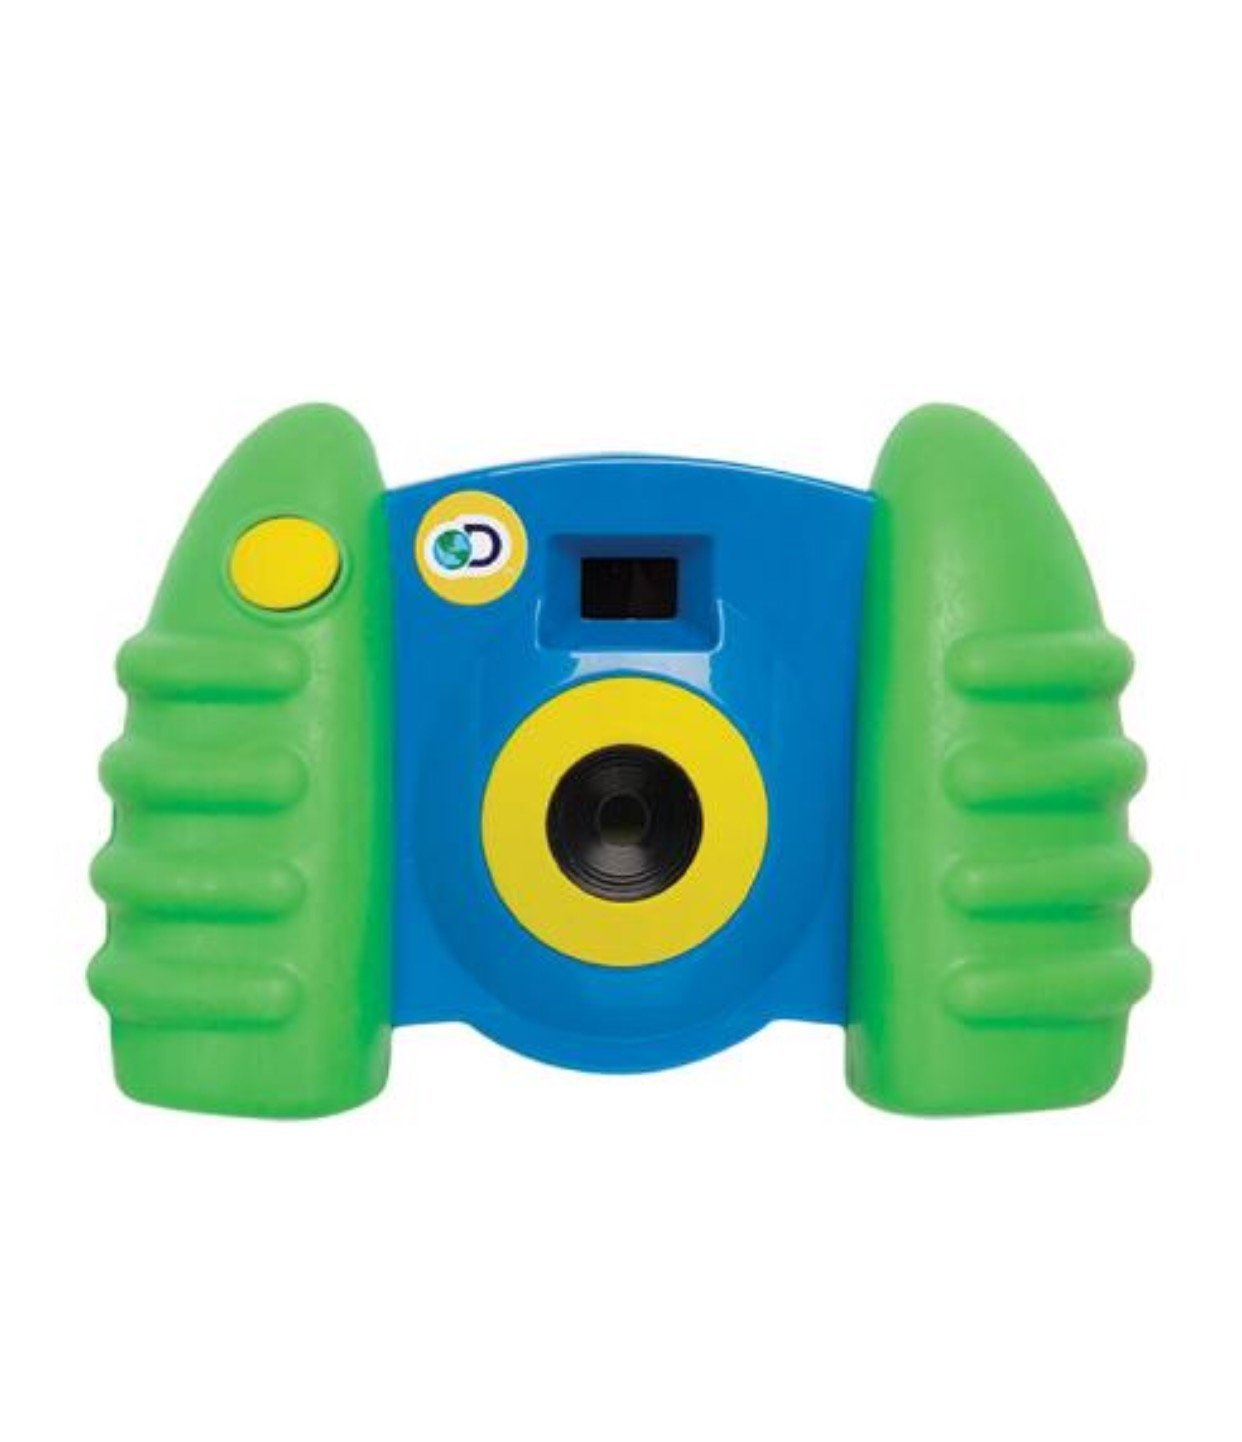 Amazon.com: Discovery Kids Digital Camera and Video: Camera & Photo